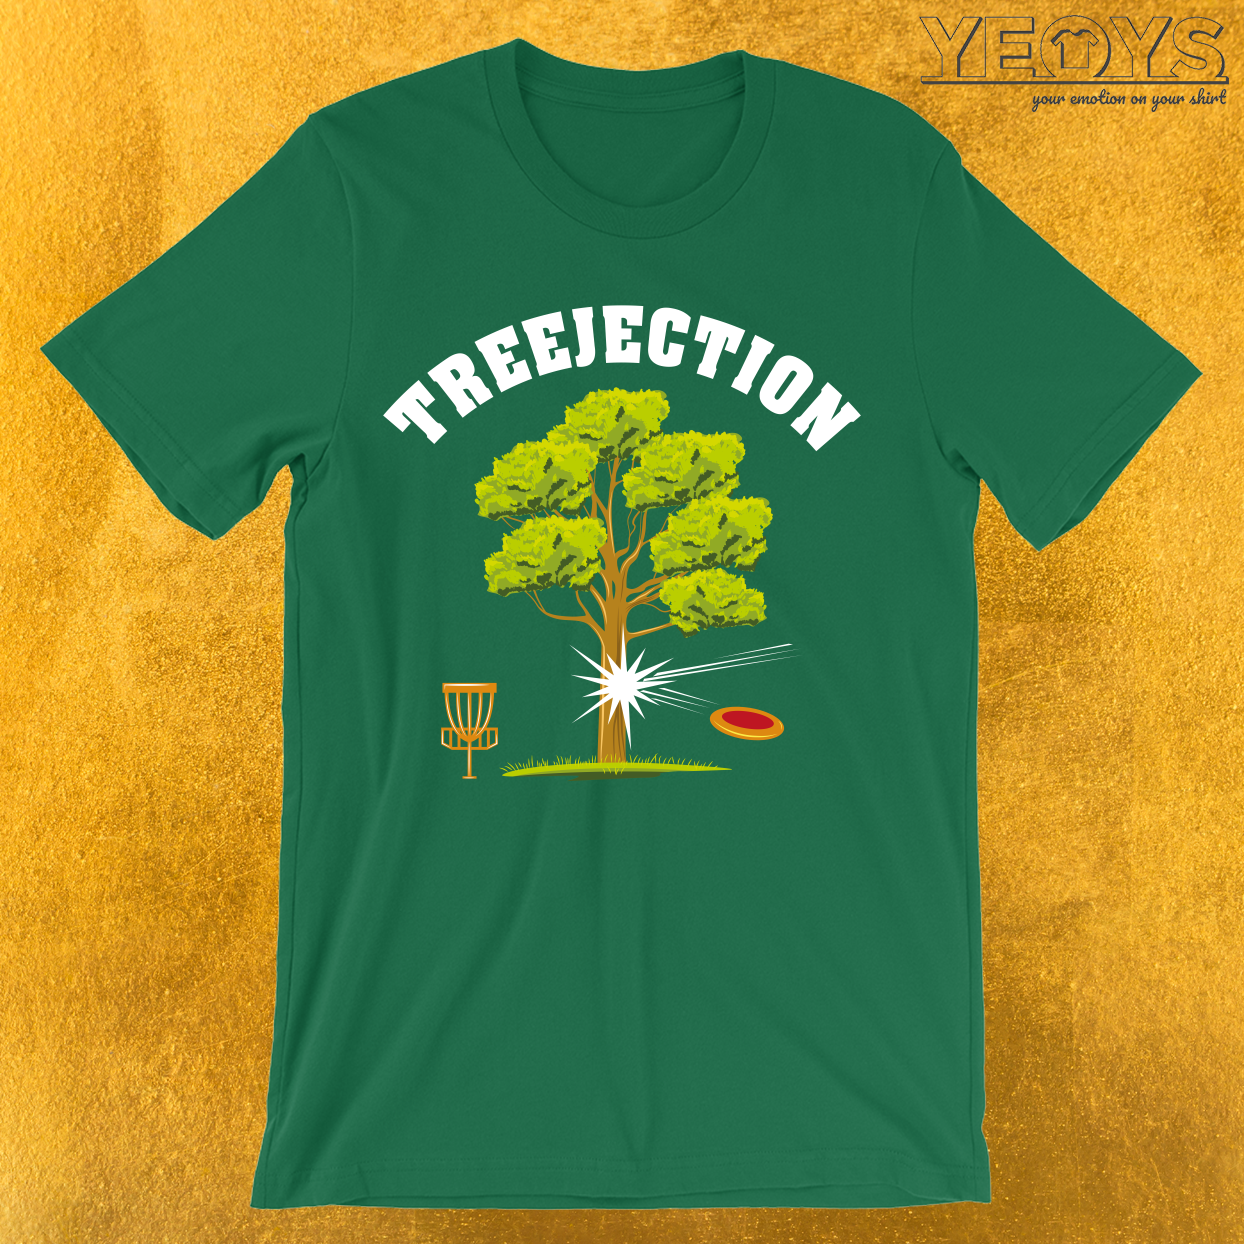 Treejection T-Shirt